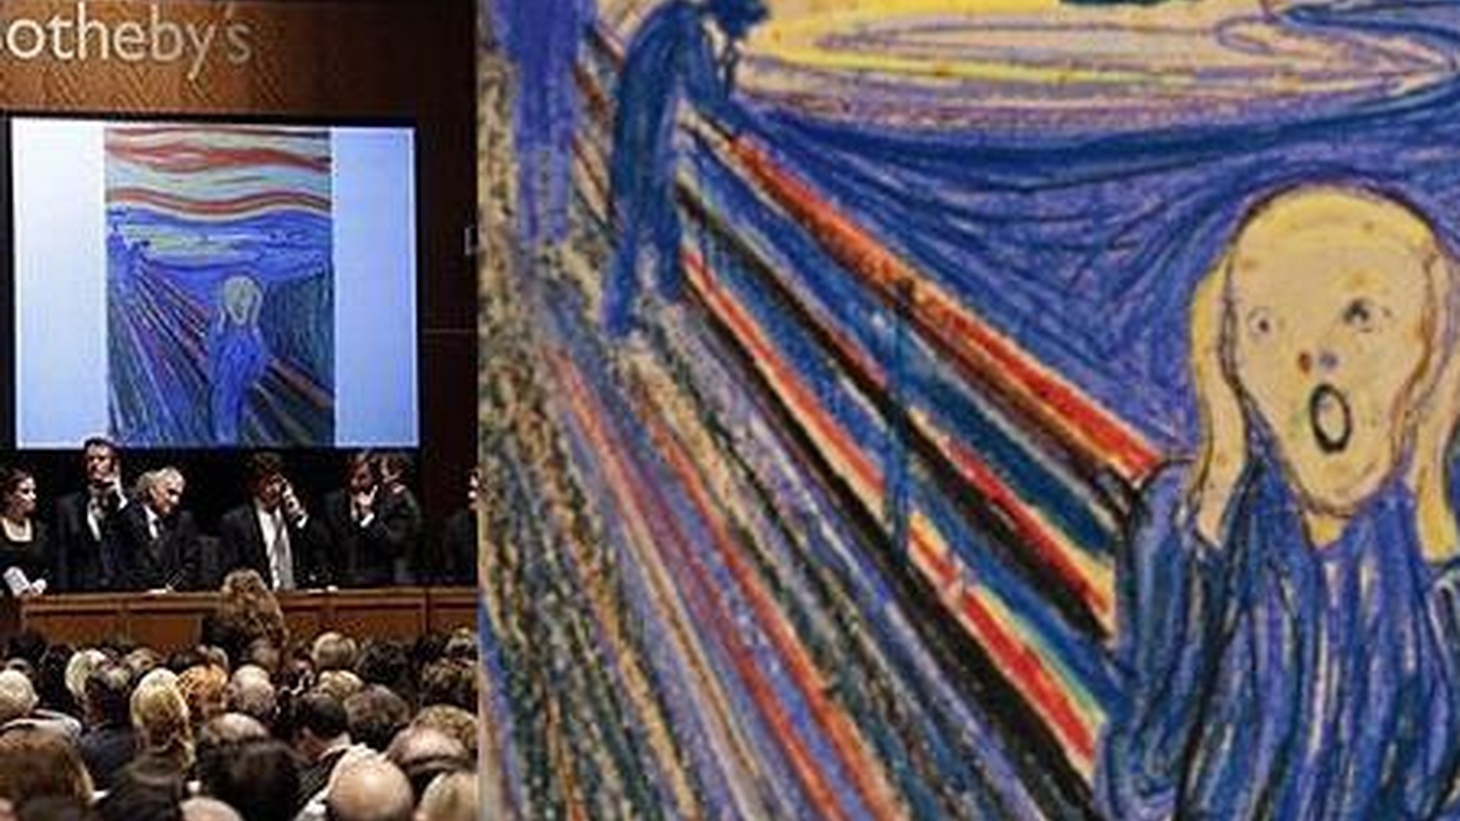 Two stories that made the front-page news last week: one about art and an obscene amount of money, the other about the shameful treatment of a political dissident in China.